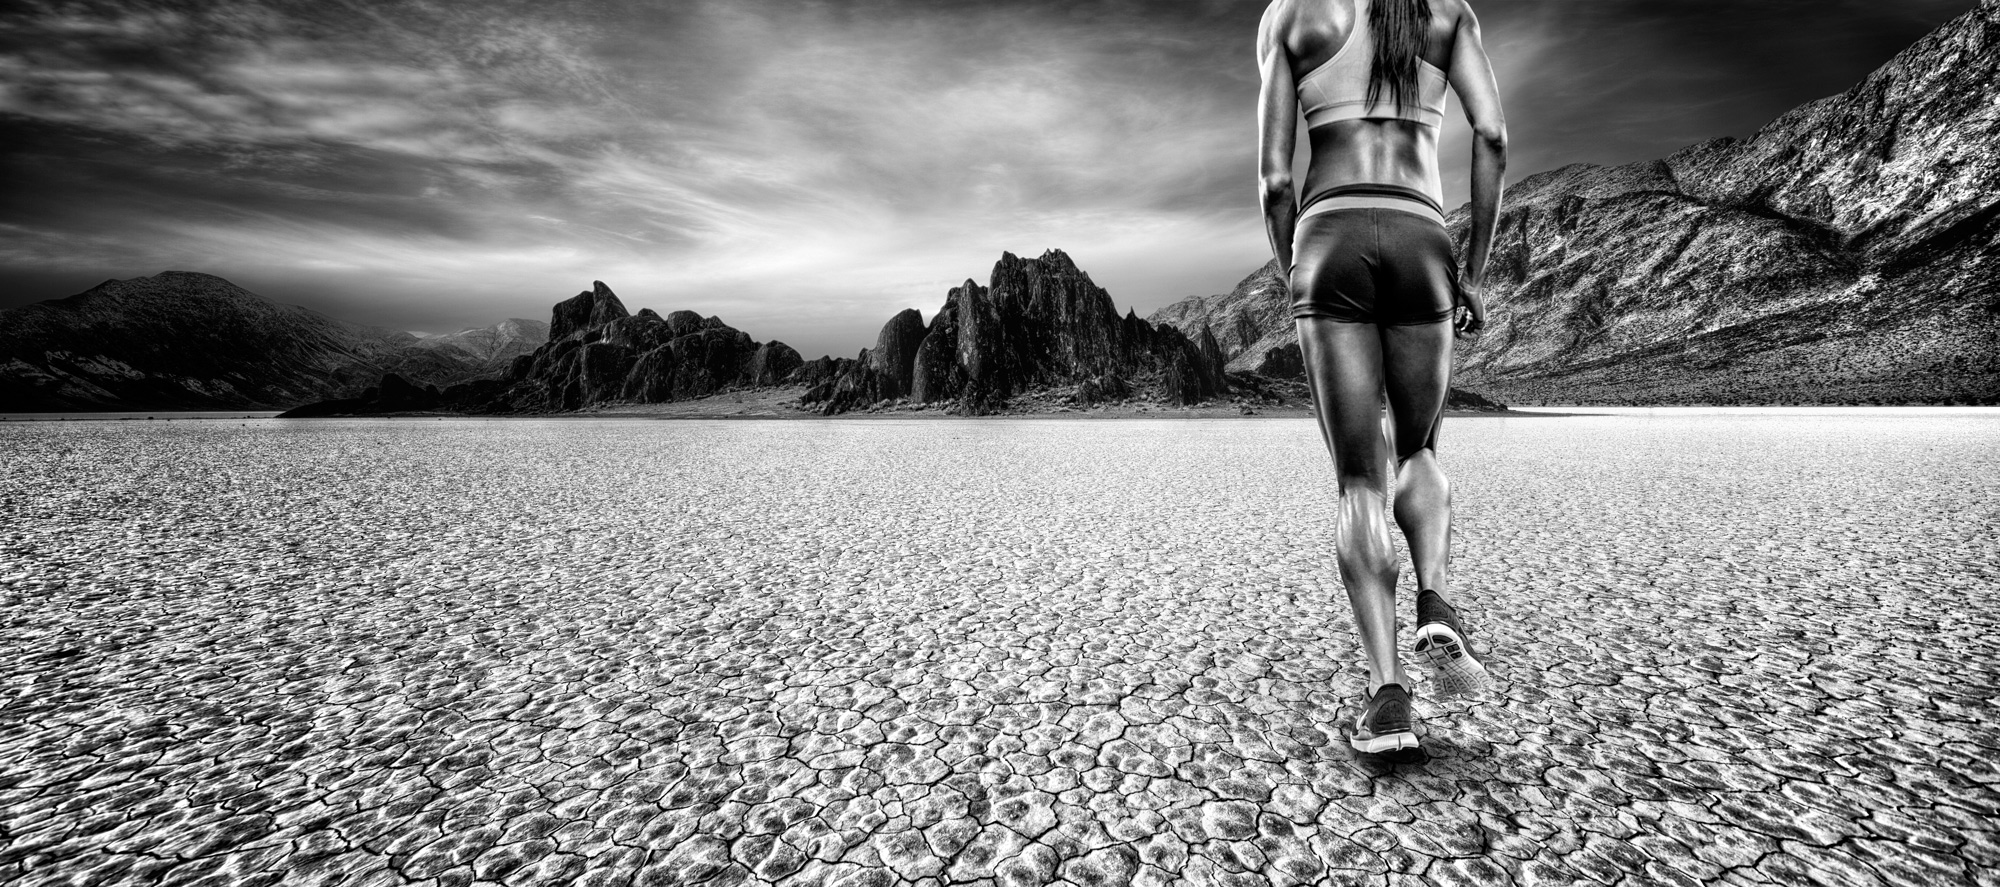 Runner in Death Valley | Dovis Bird Agency Photography